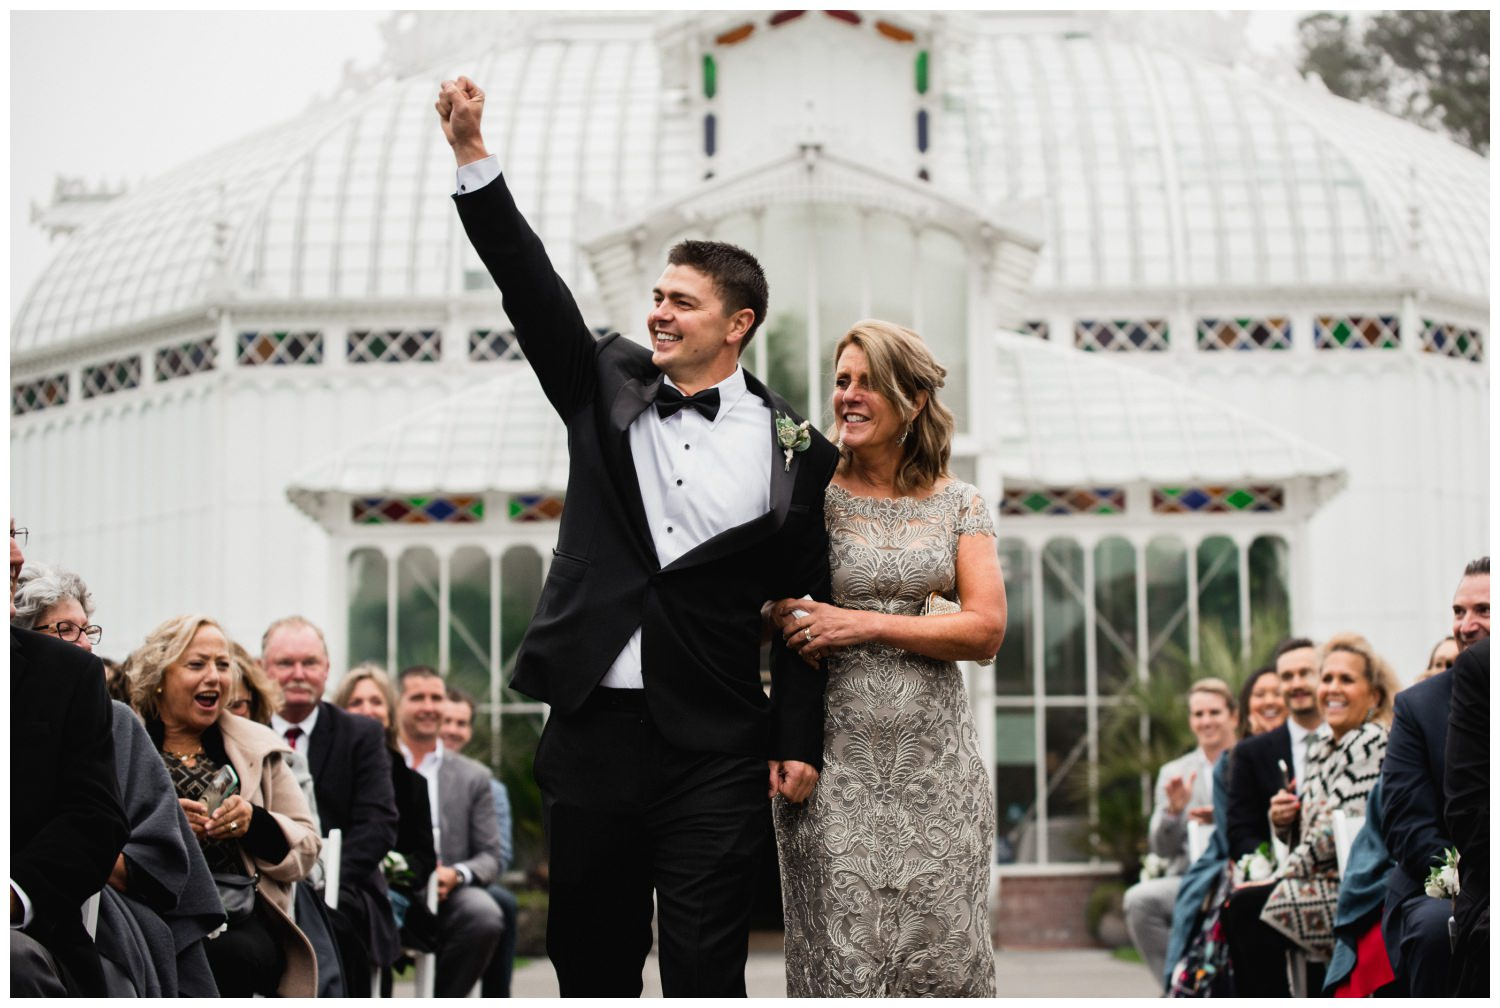 San Francisco Wedding at the Conservatory of Flowers